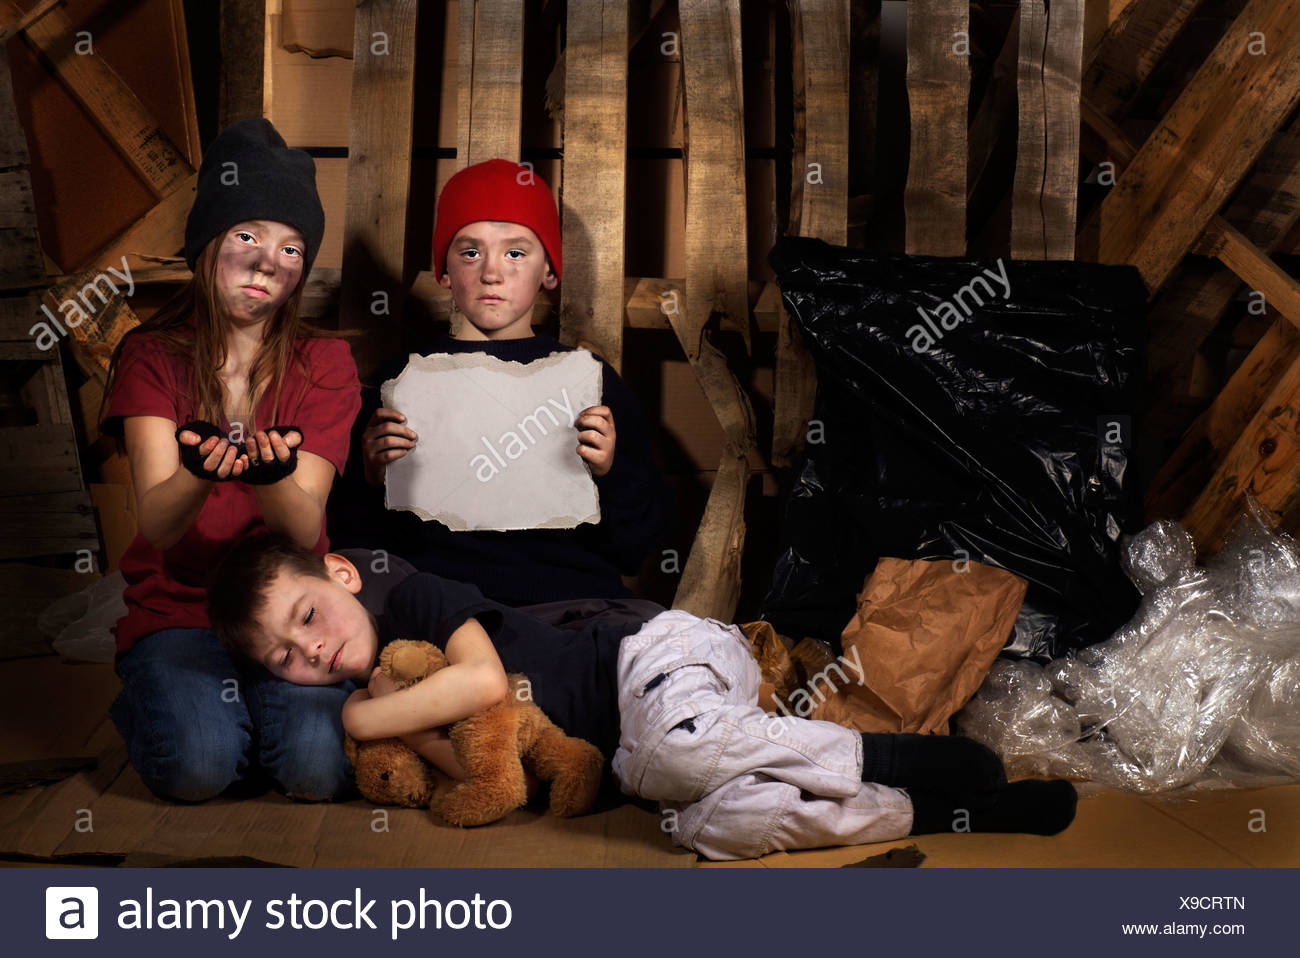 Impoverished children - Stock Image